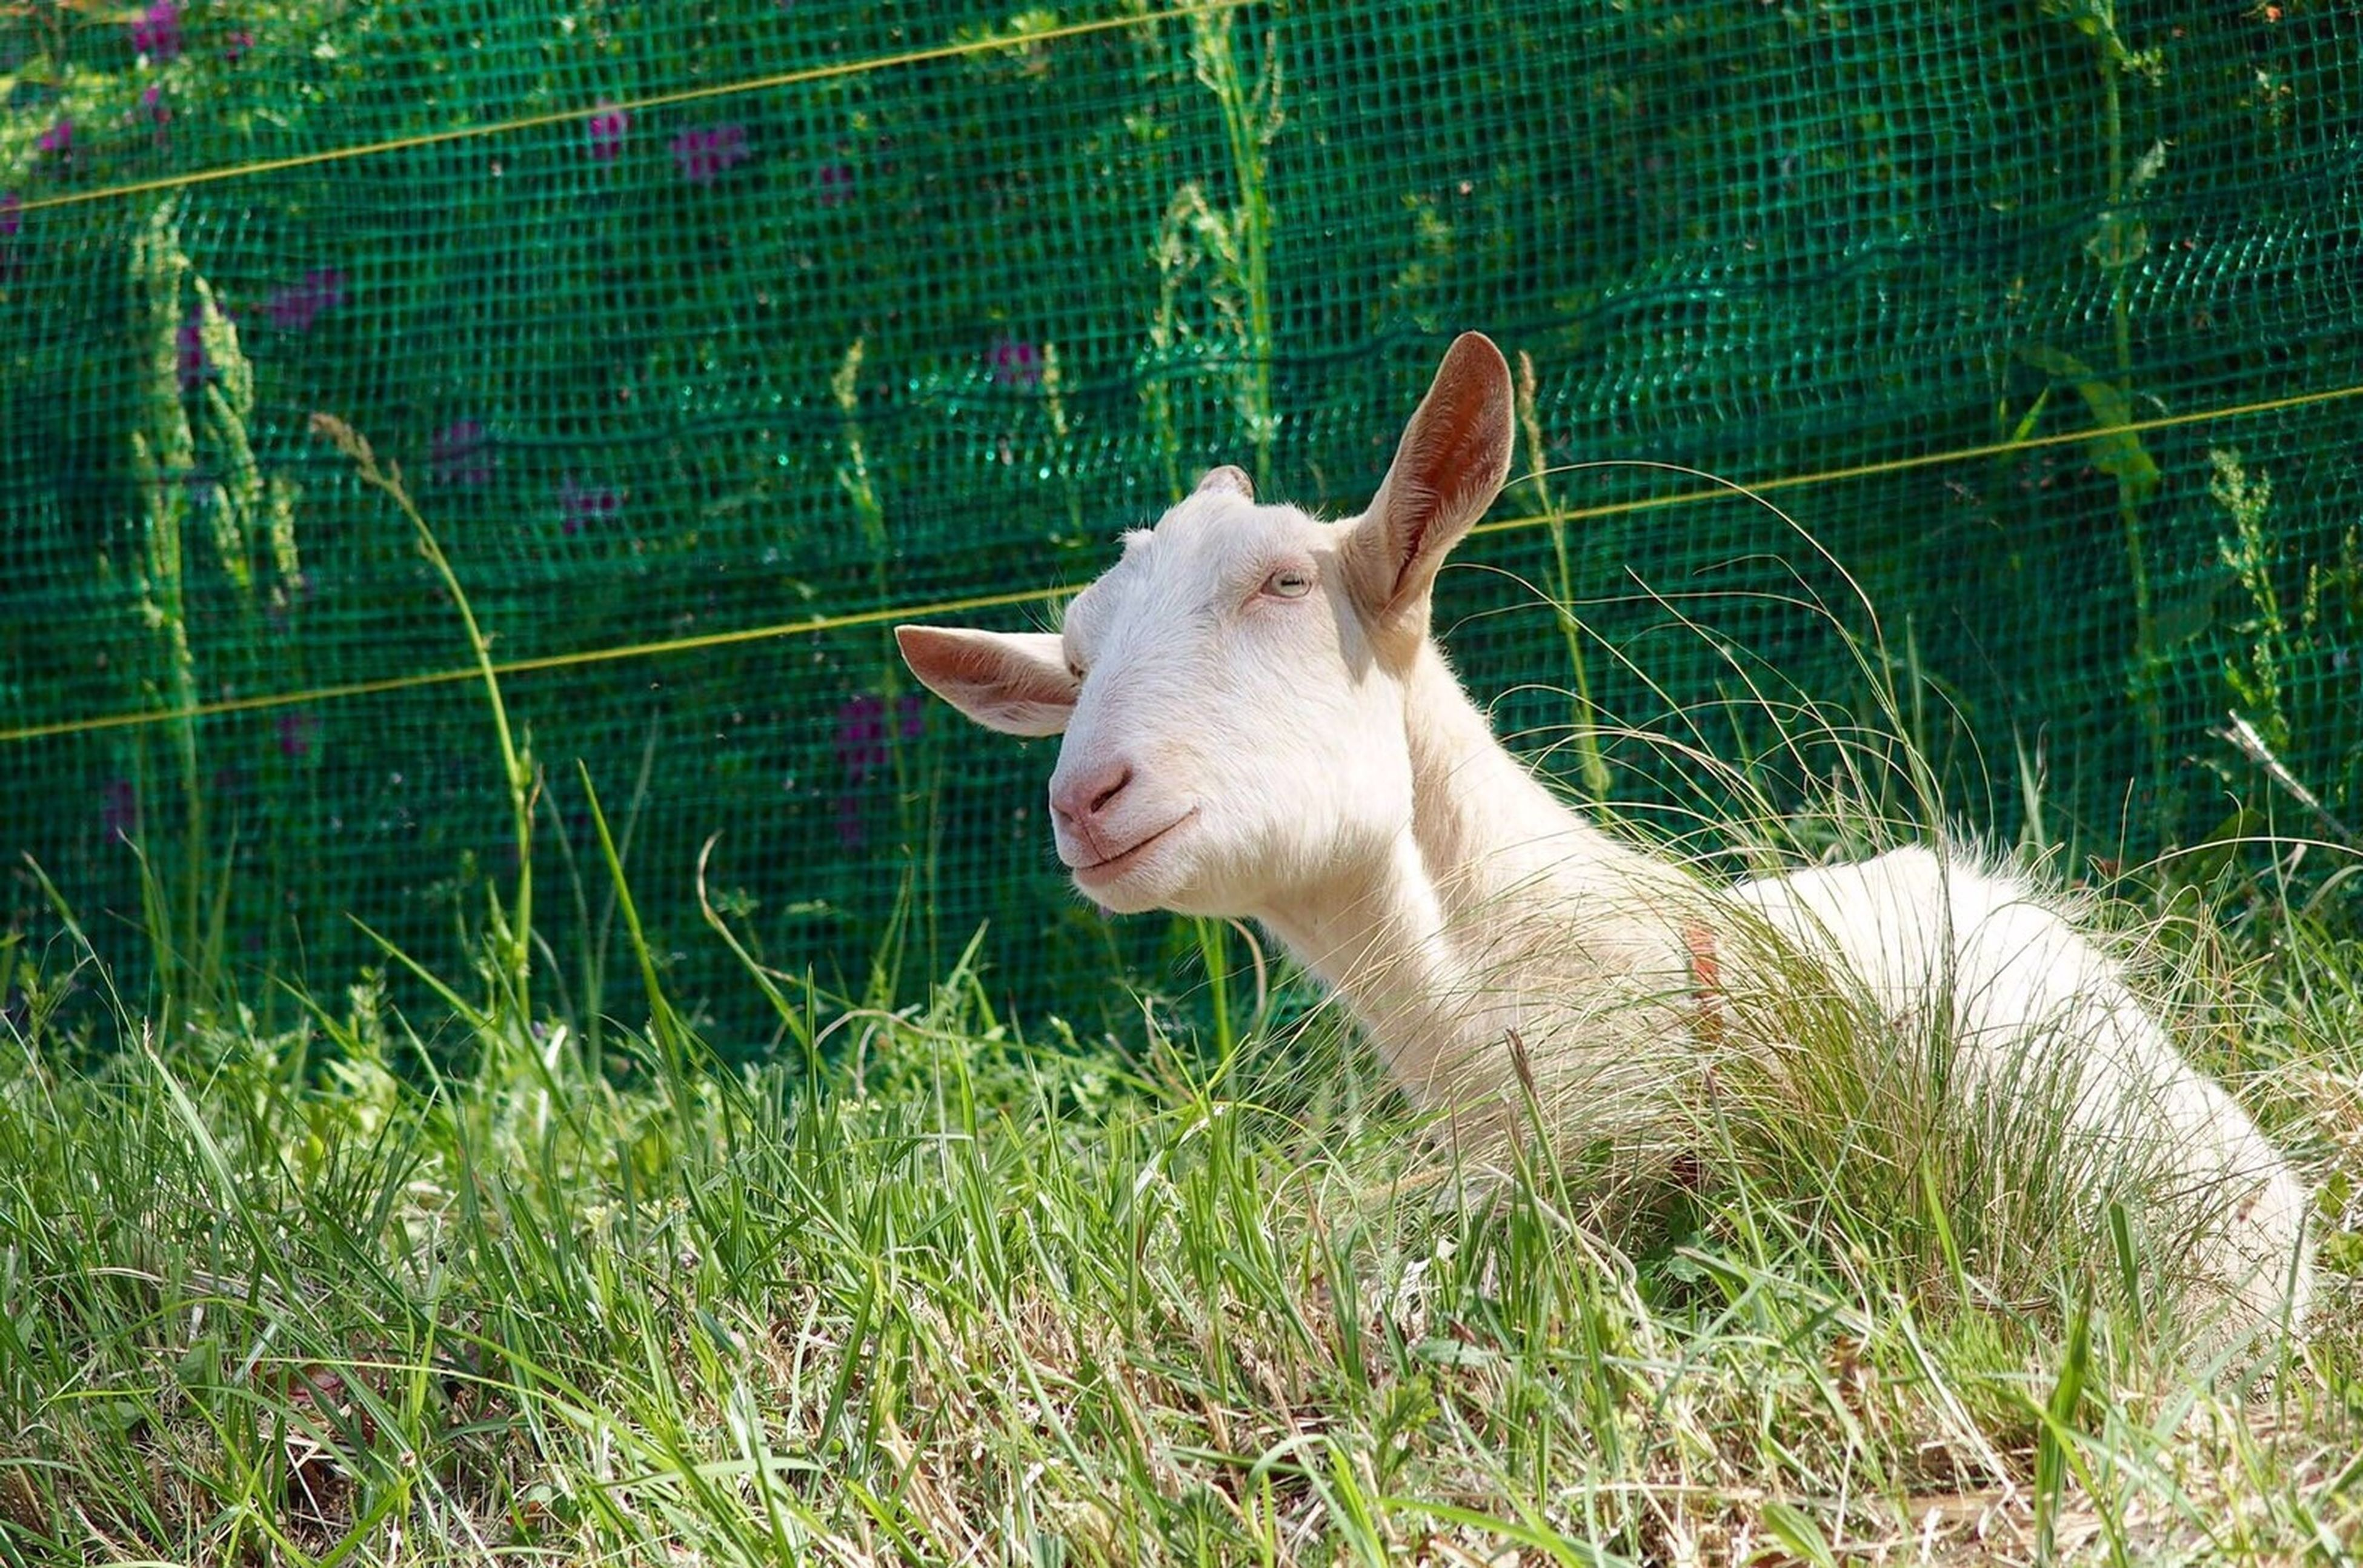 animal themes, one animal, mammal, grass, green color, young animal, nature, livestock, domestic animals, day, outdoors, no people